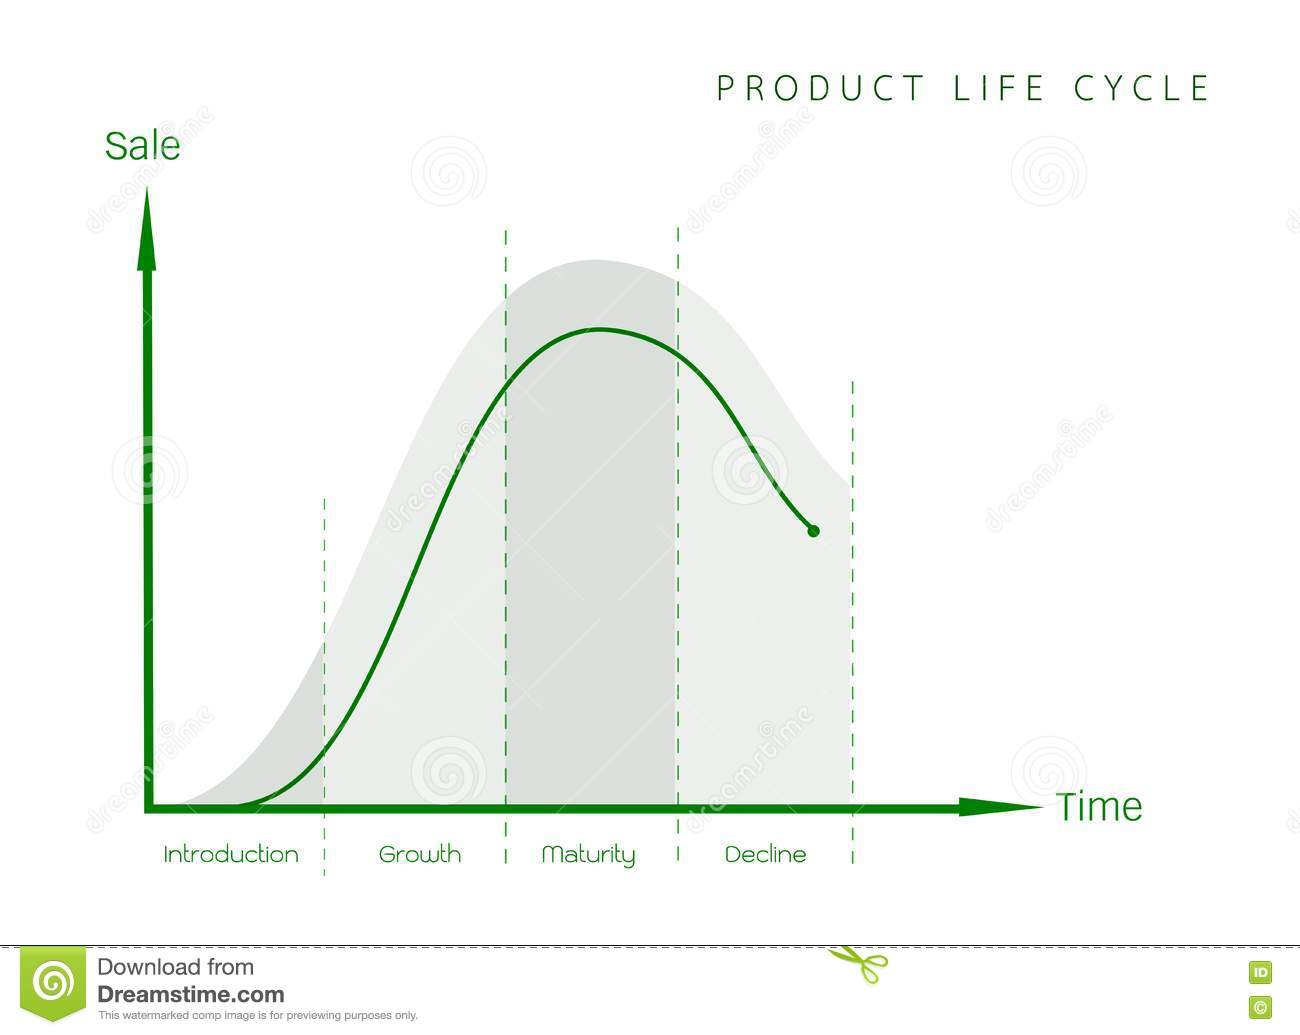 Product life cycle diagram stock illustrations 106 product life product life cycle diagram stock illustrations 106 product life cycle diagram stock illustrations vectors clipart dreamstime ccuart Choice Image